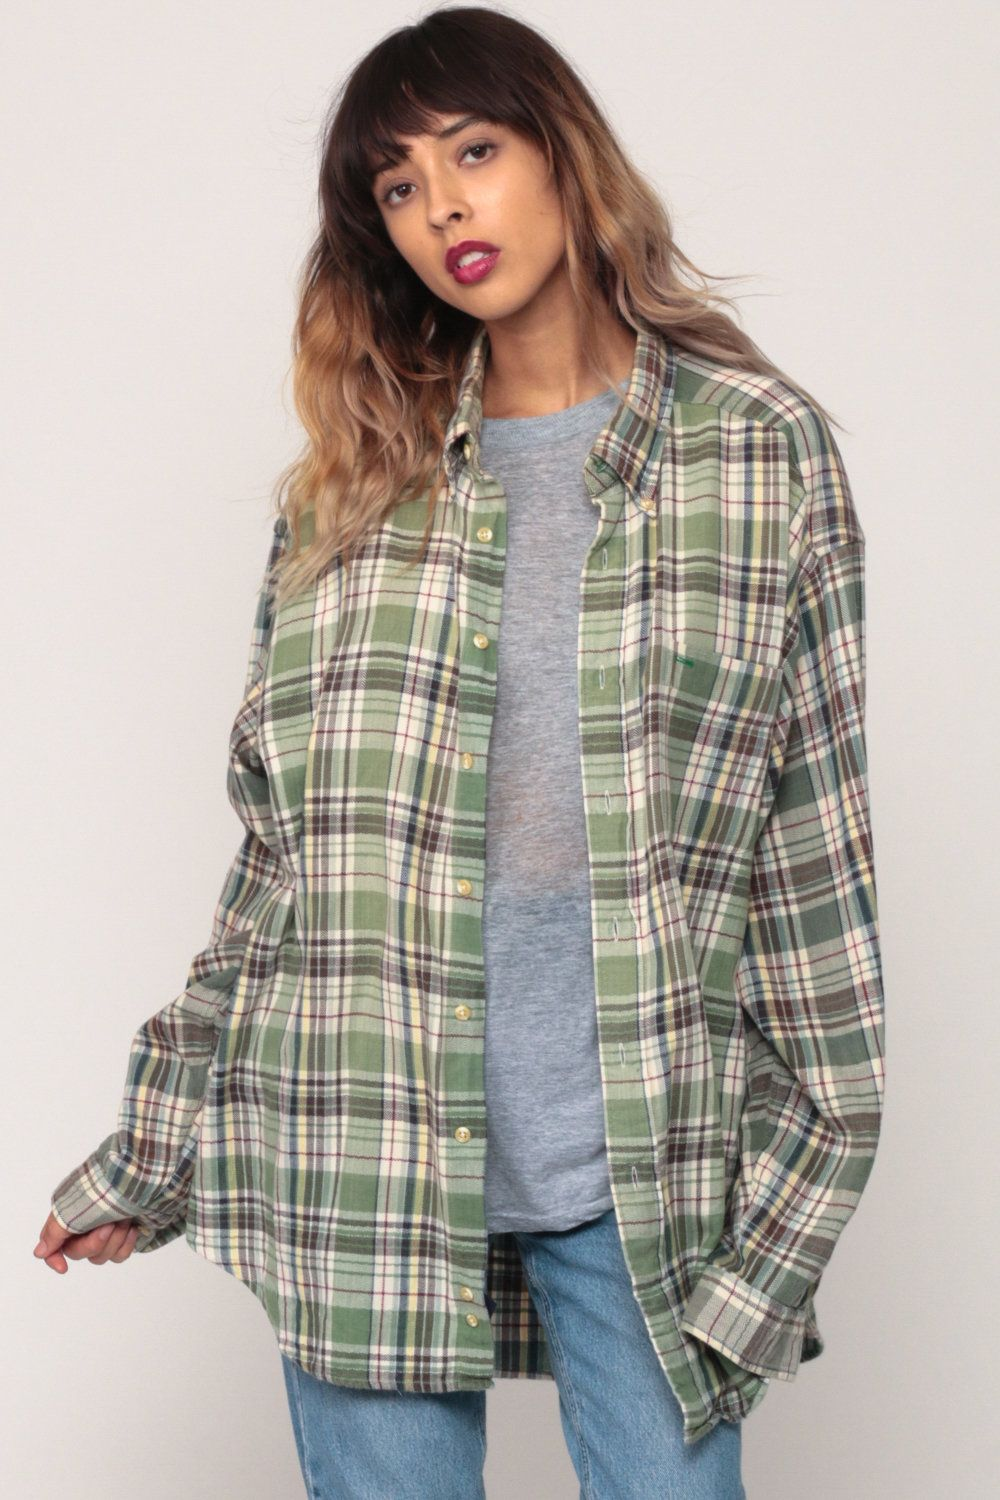 Flannel shirts 1990s  Green Flannel Shirt s Plaid Shirt Oversized Grunge Button Up s